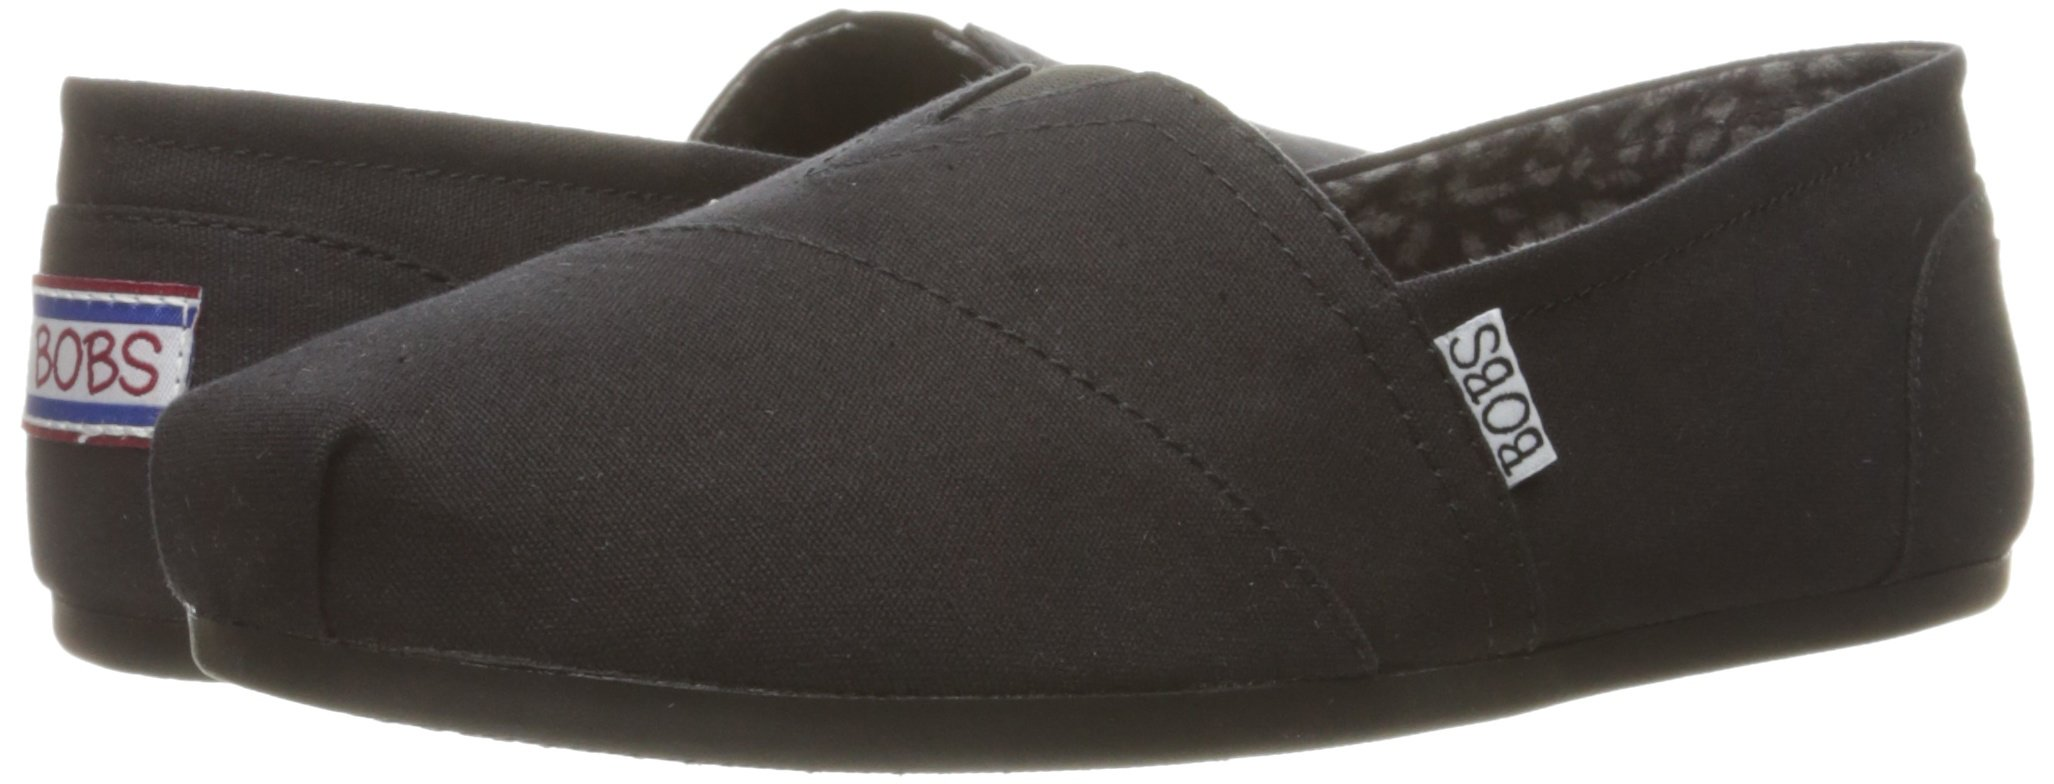 Skechers BOBS from Women's Plush - Peace and Love Flat, Black, 9.5 W US by Skechers (Image #6)